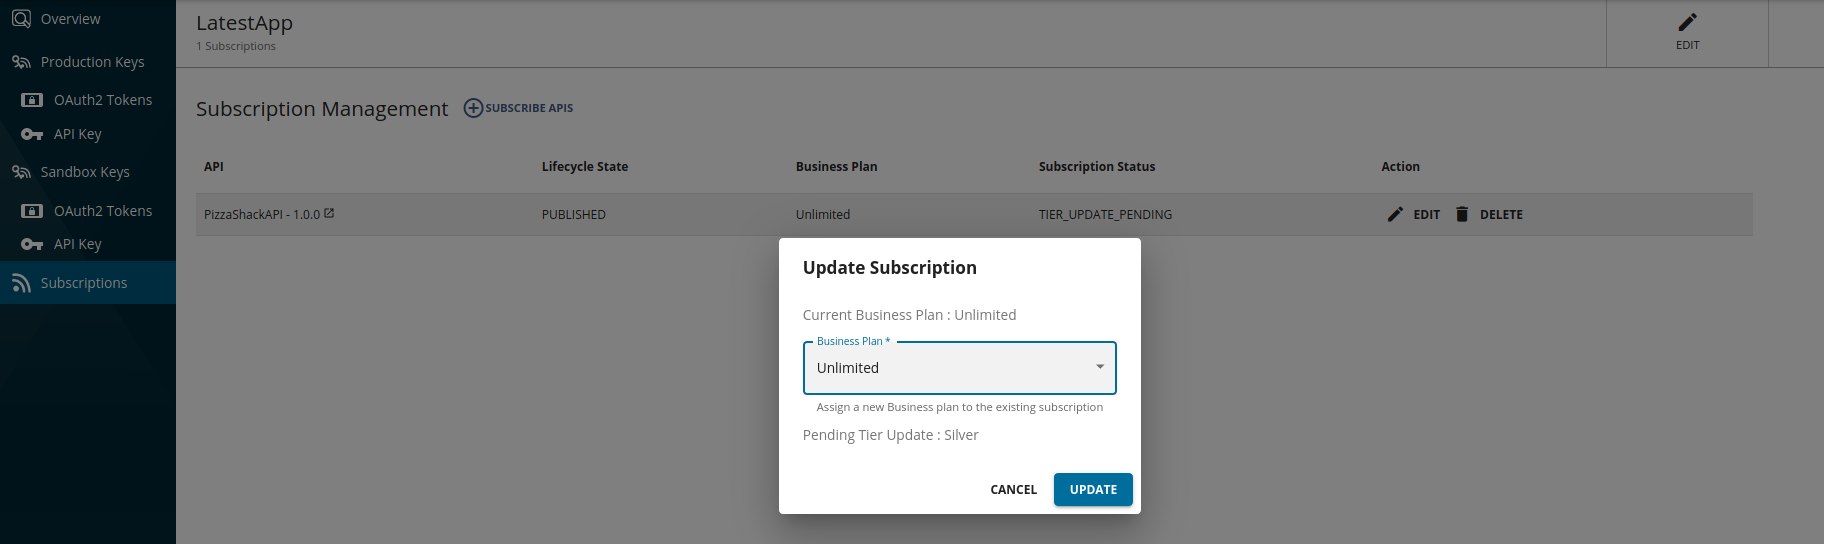 Subscription Update New Tier Request